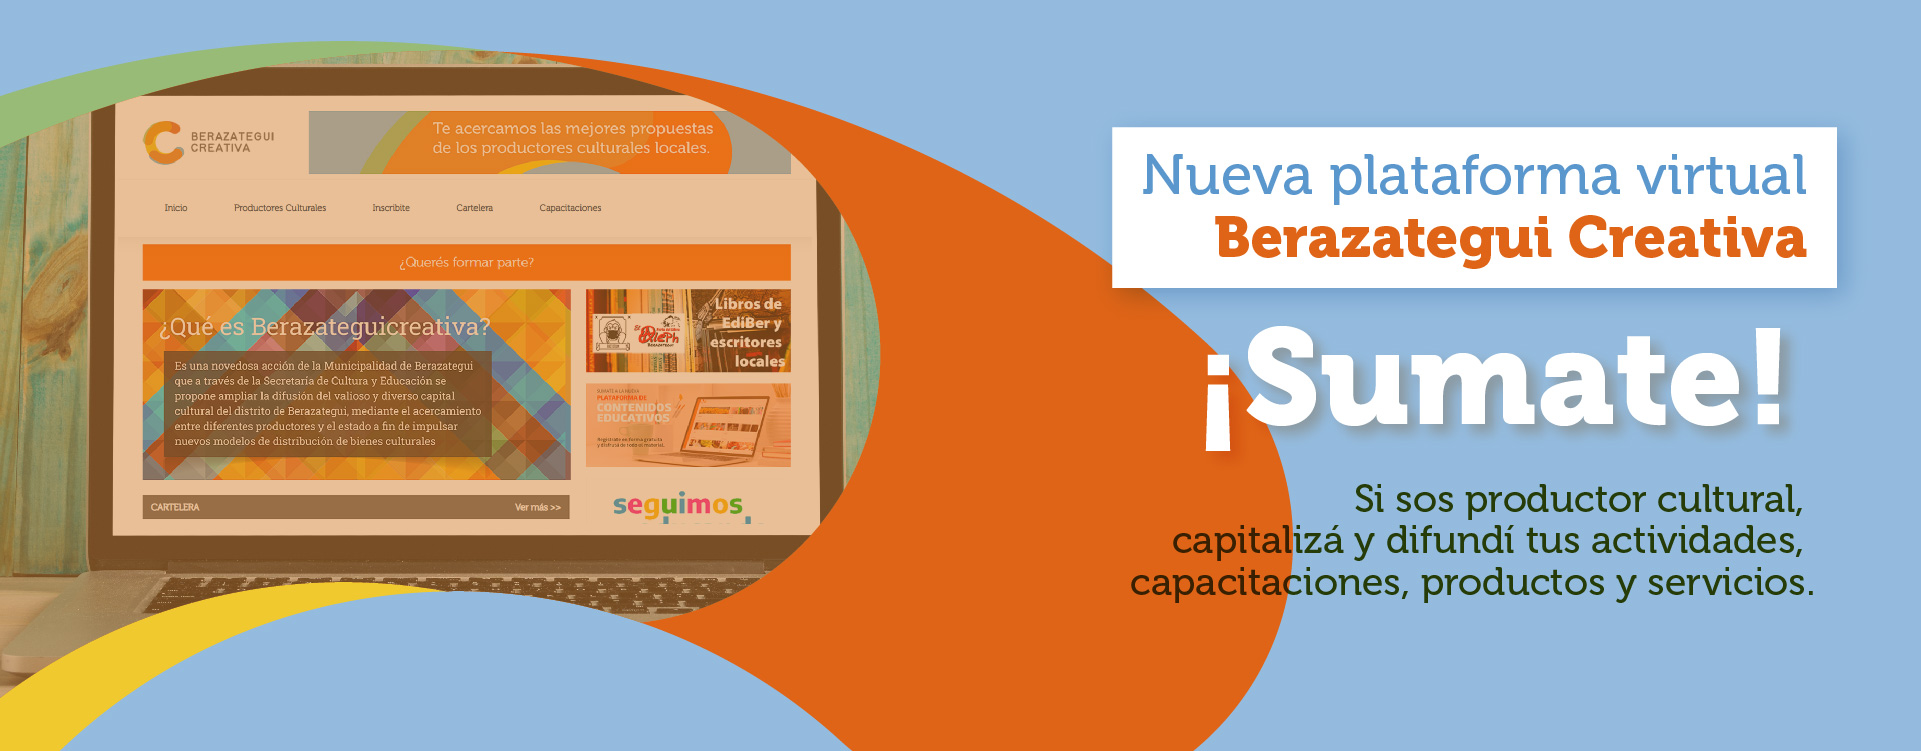 flyer-berazategui-creativa-convocatoria_Slider